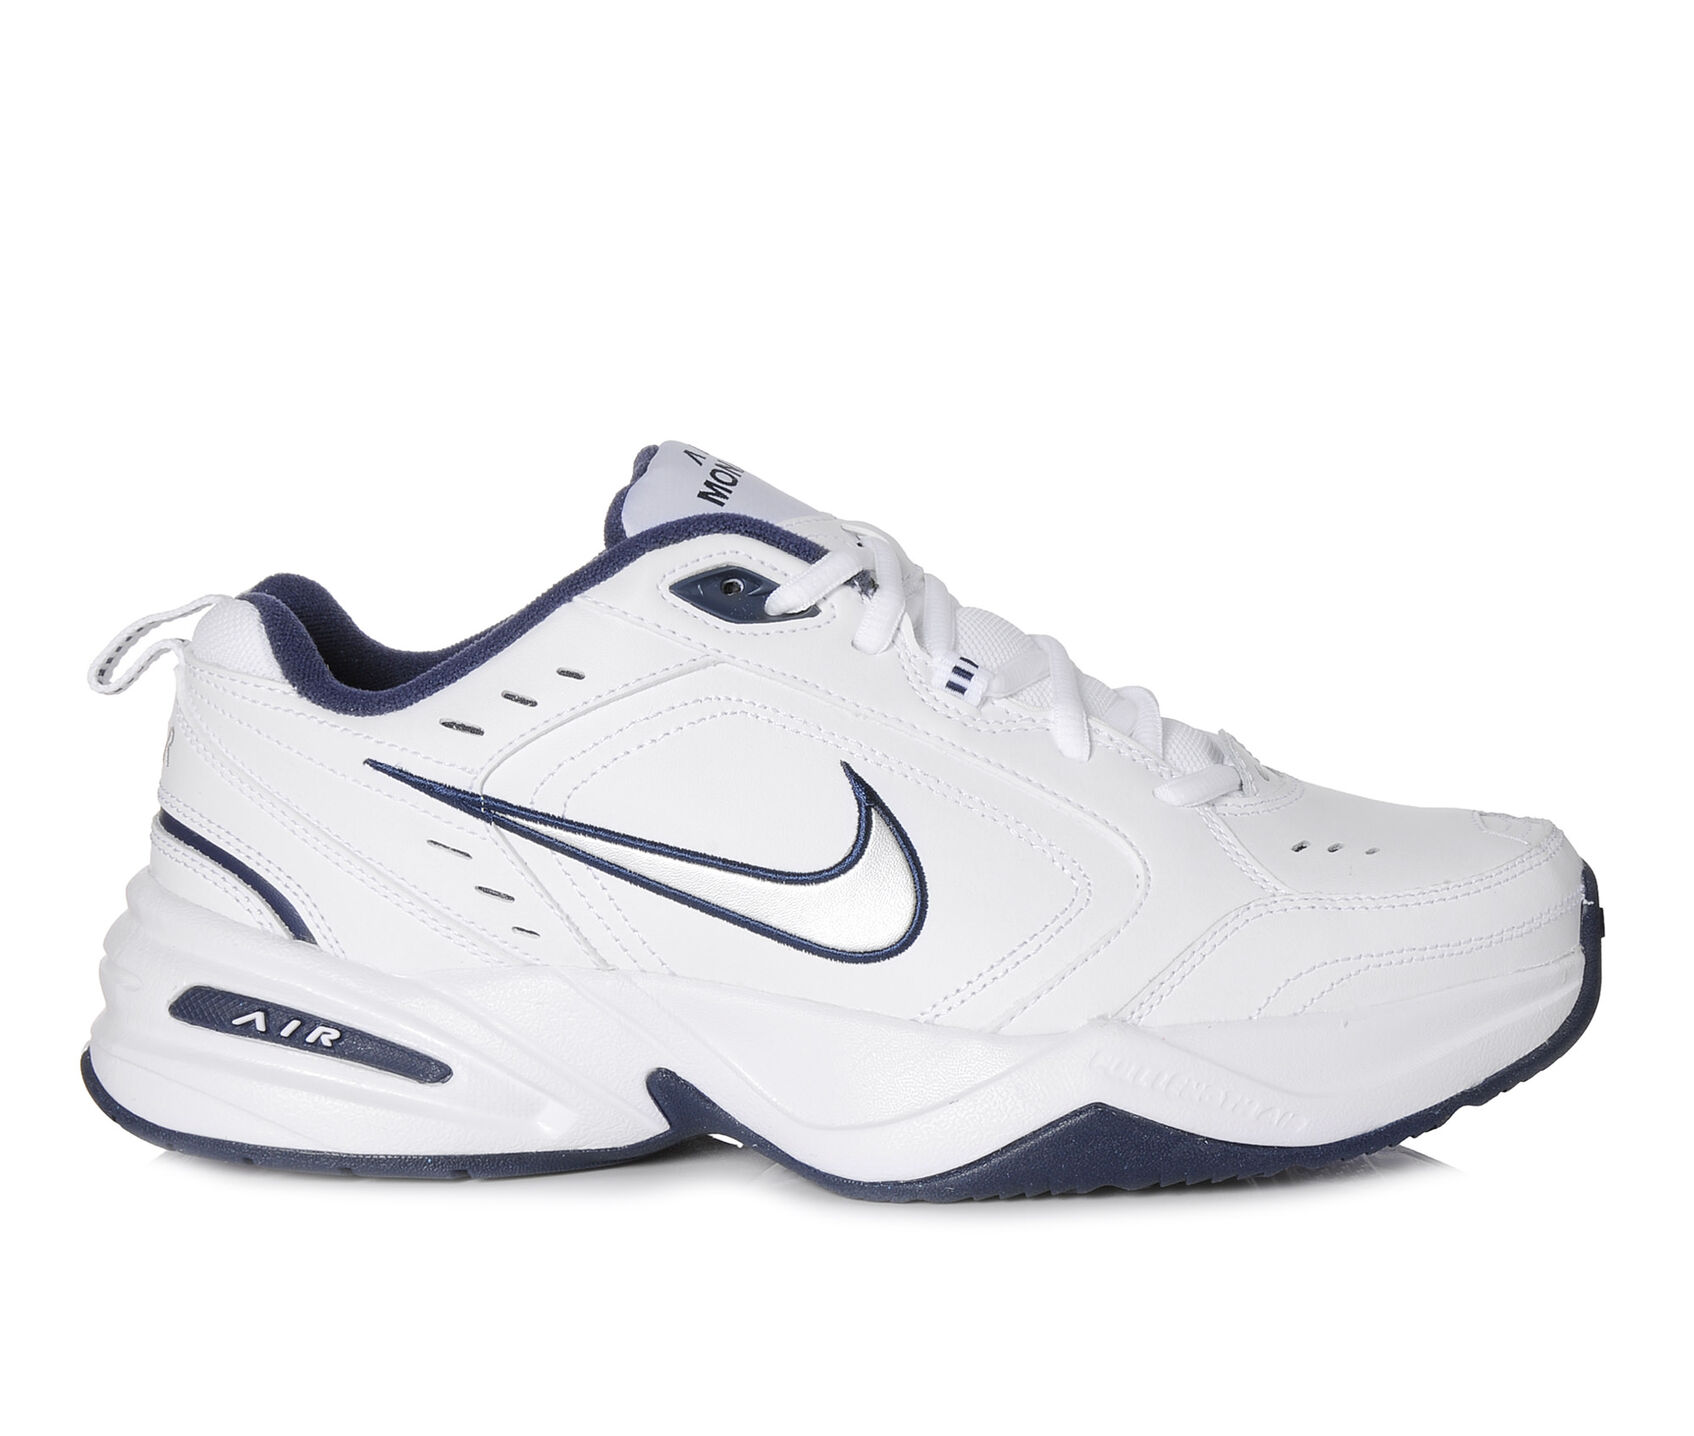 Nike Extra Wide Mens Shoes